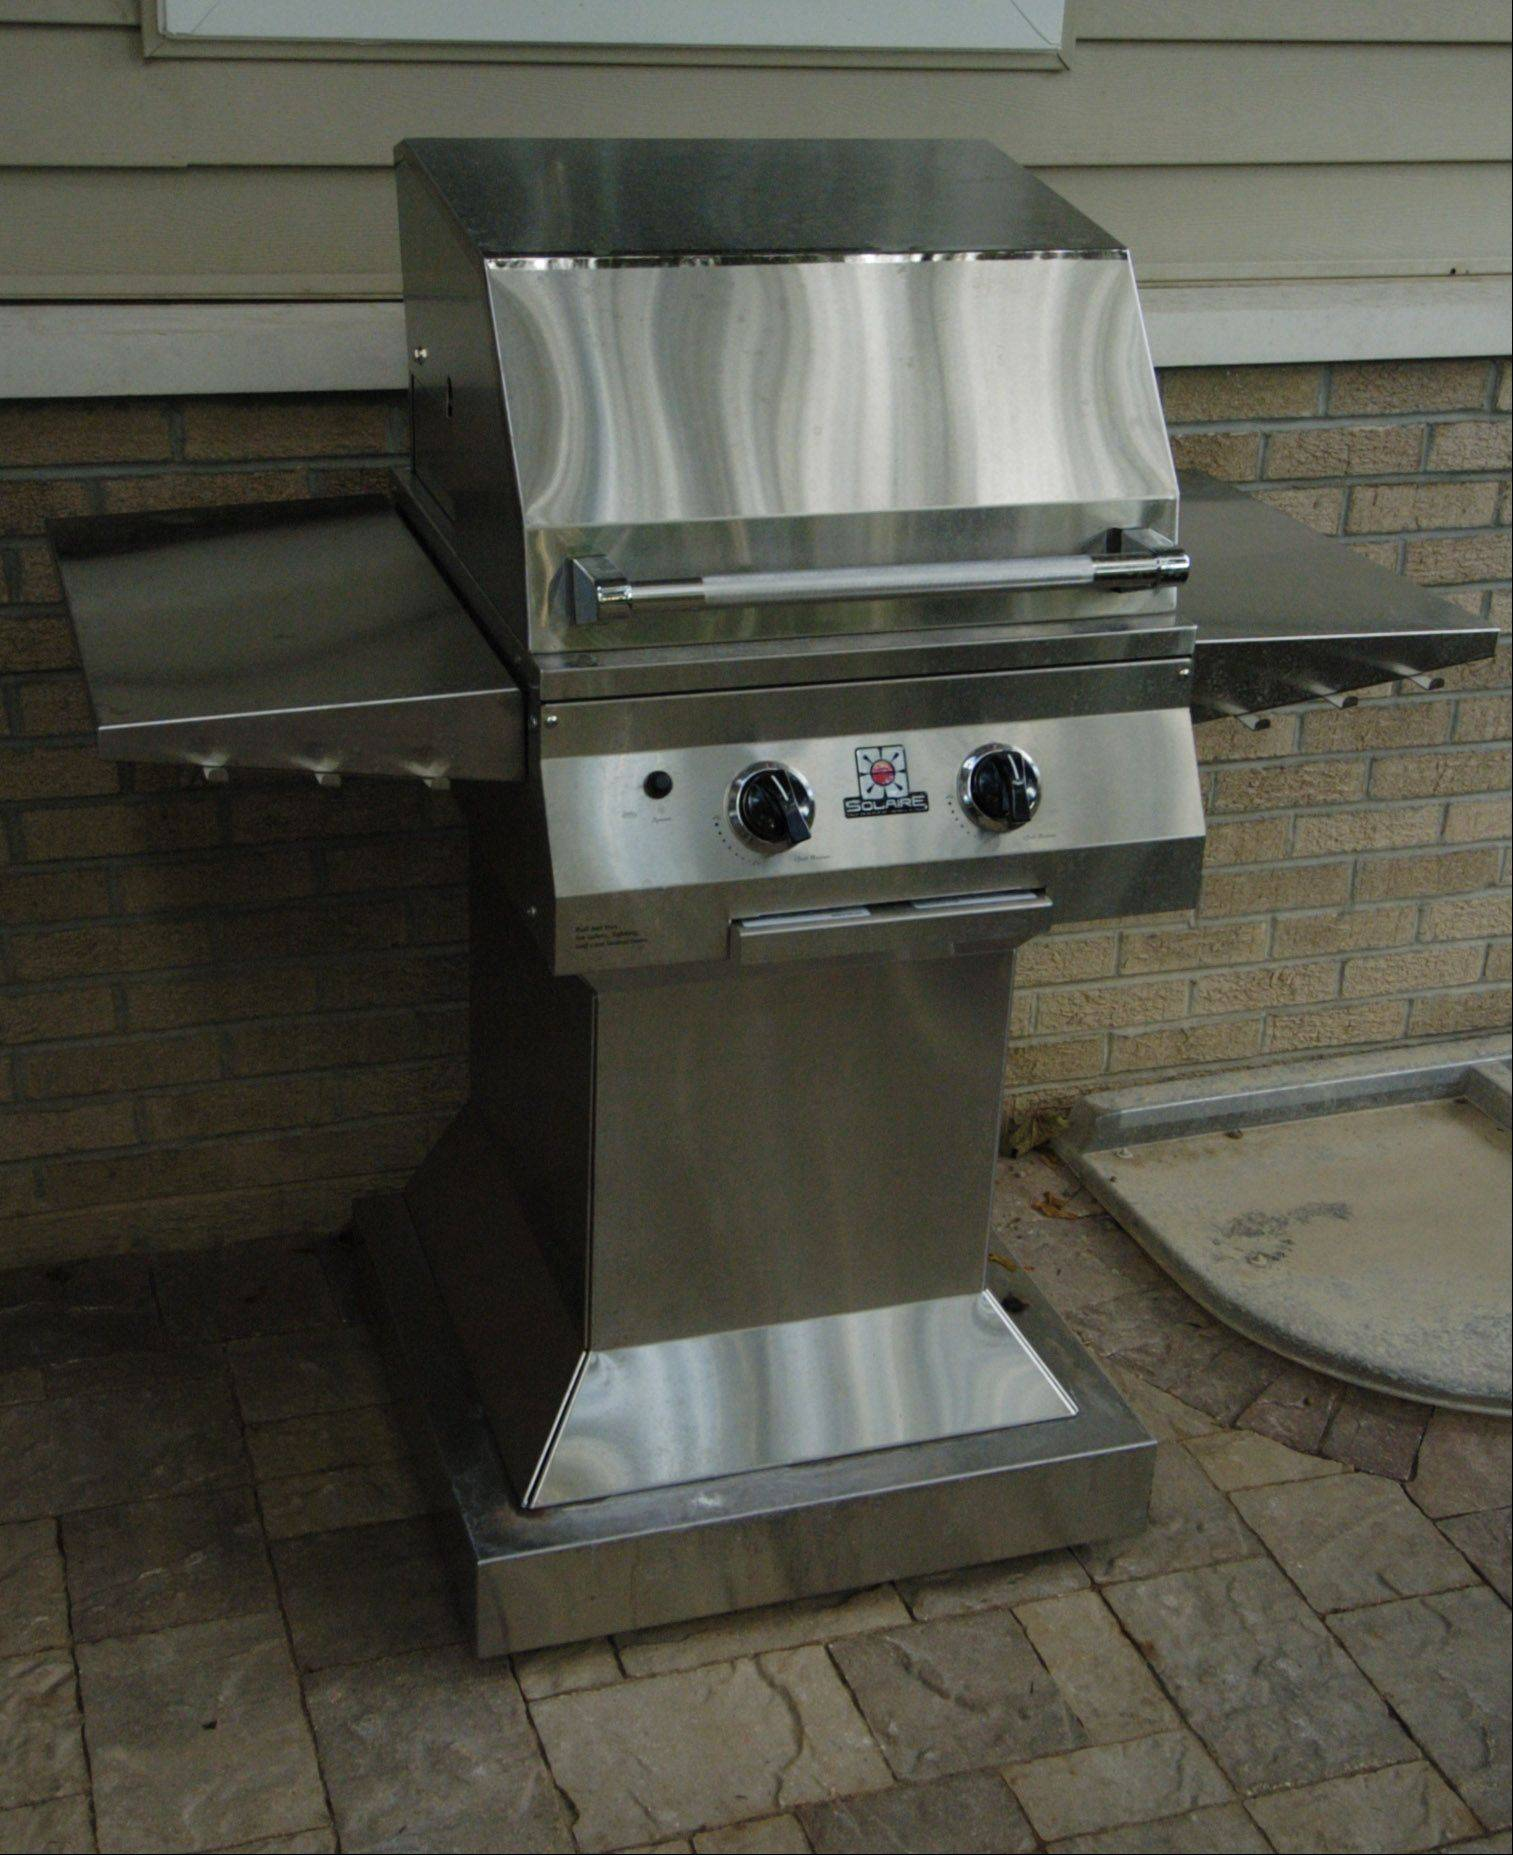 A Solaire grill stands on the Zeecks' patio.